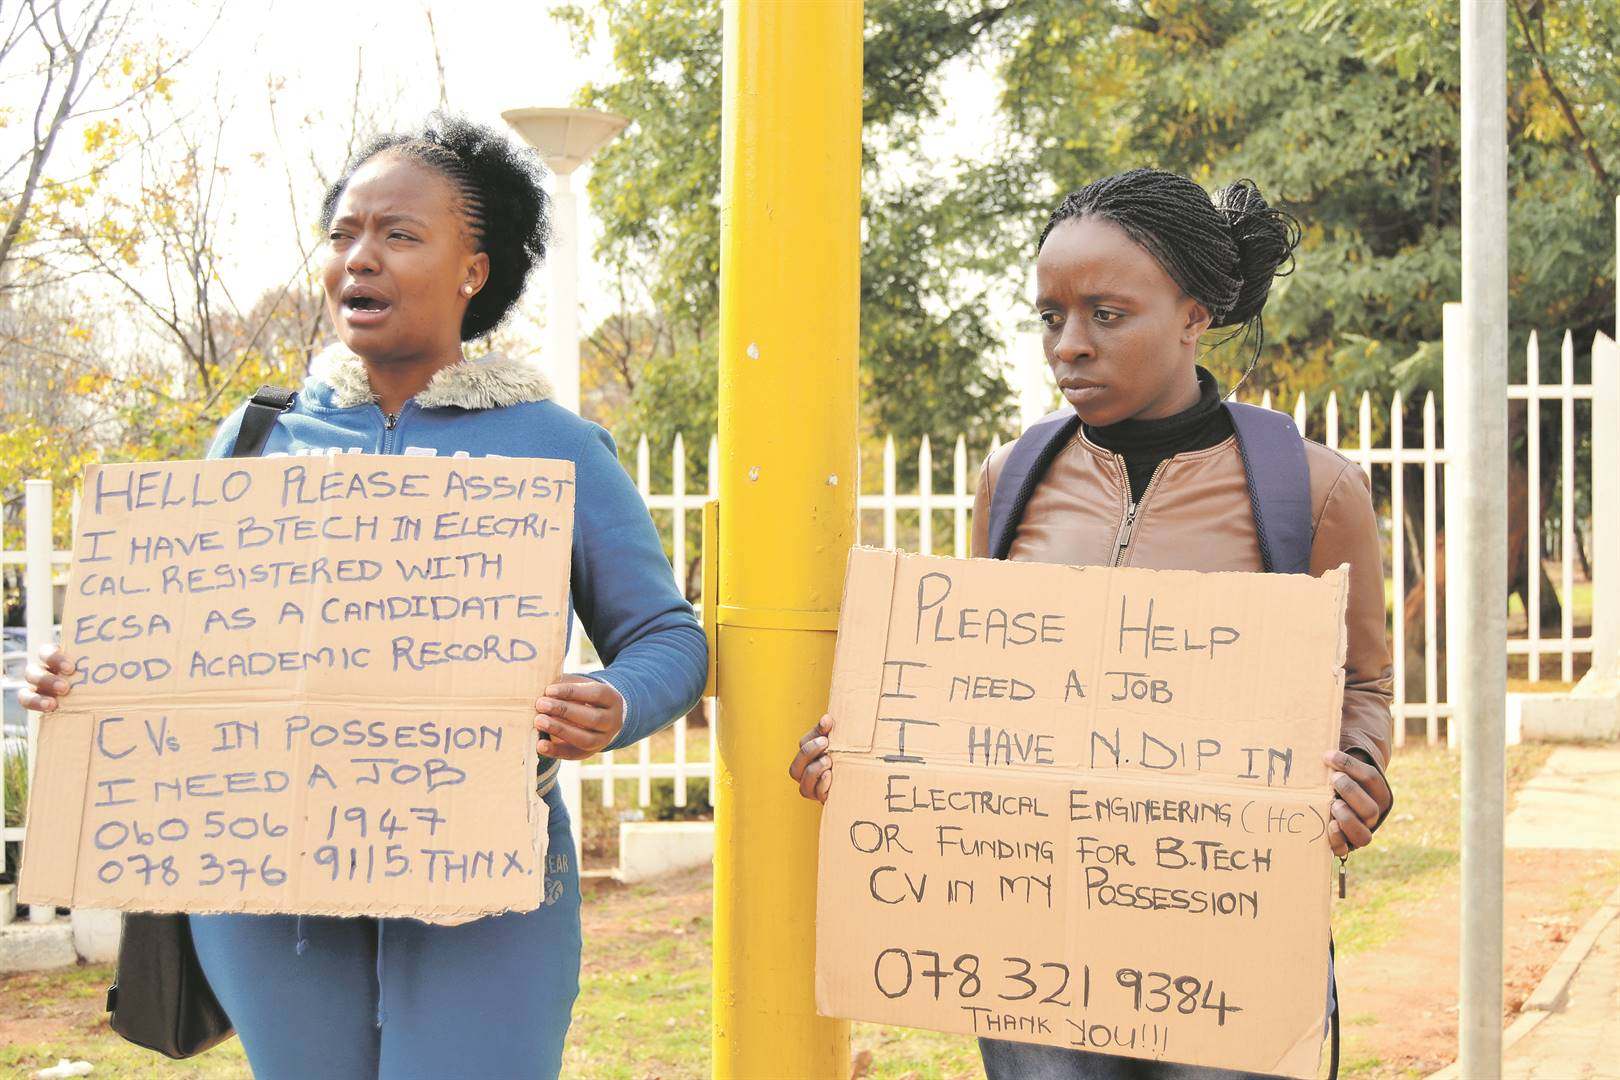 Manese Dlamini and Nelisiwe Makhubu have taken to begging for jobs. Corporate SA can help them and others by offering internships and work experience stints to get experience. Picture: Tebogo Mokwena